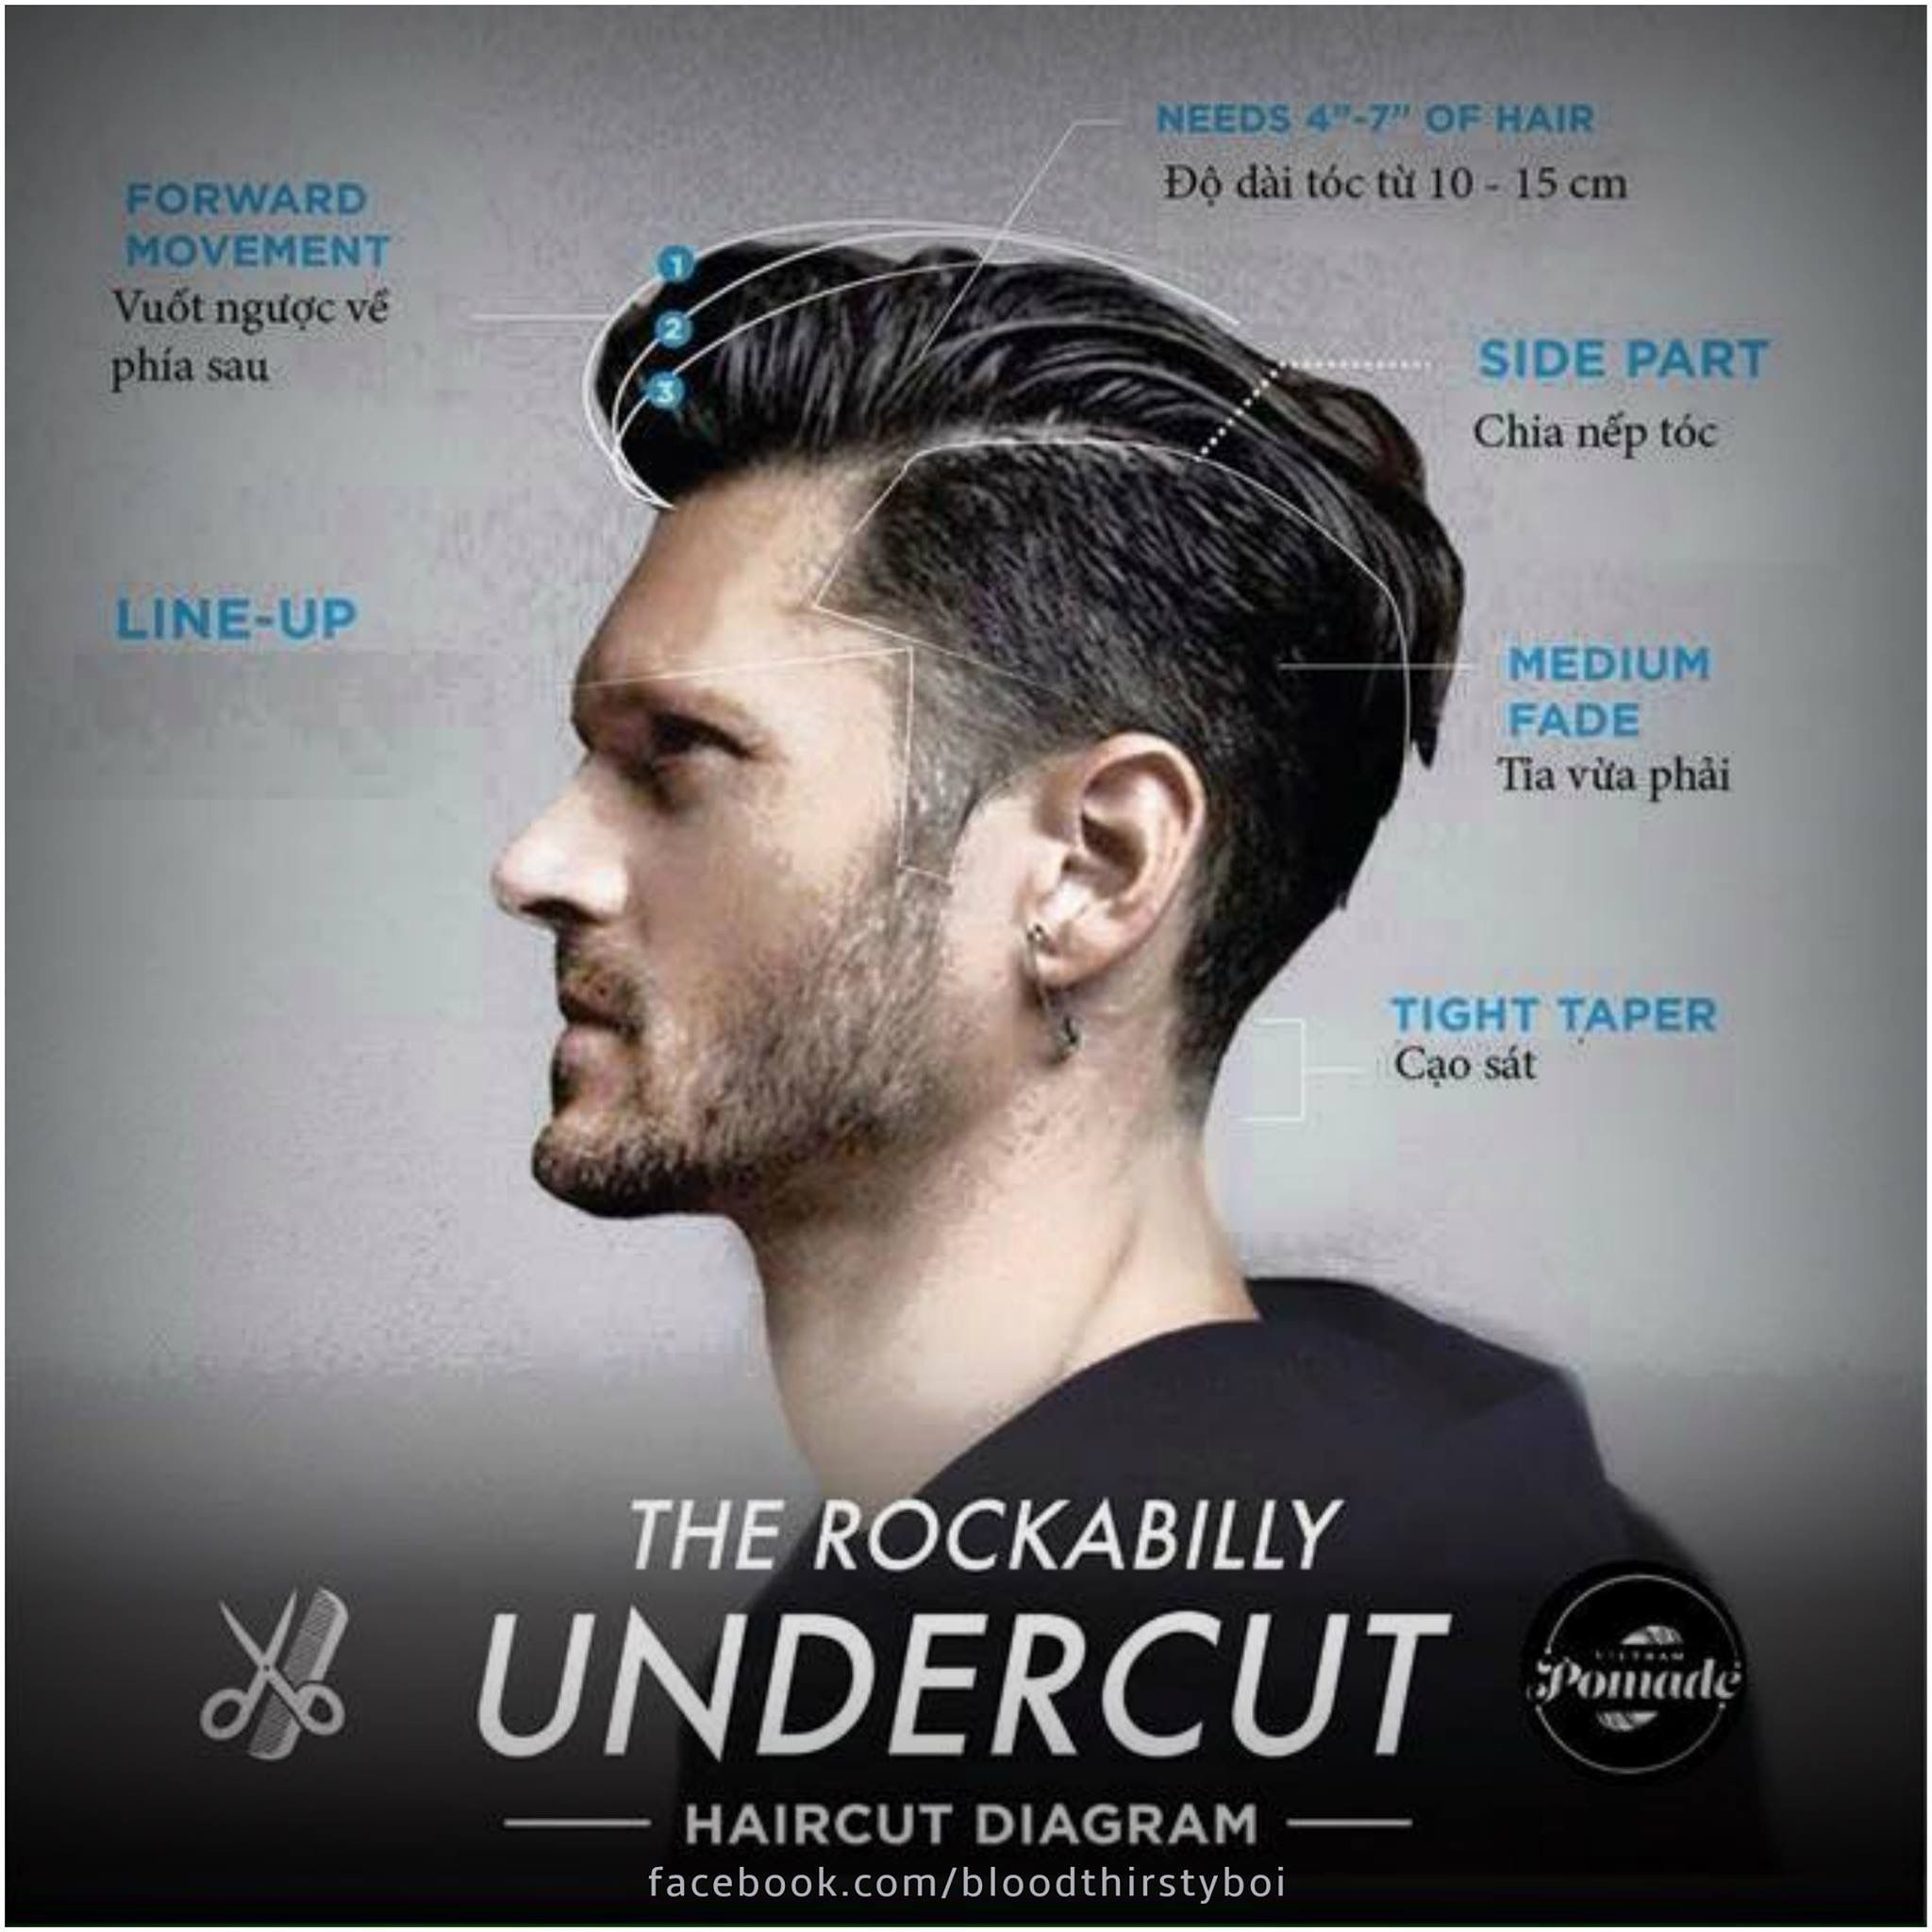 Pin by Lisa 'Elizabeth' Buzo on HAIR_Men's Cuts | Pinterest